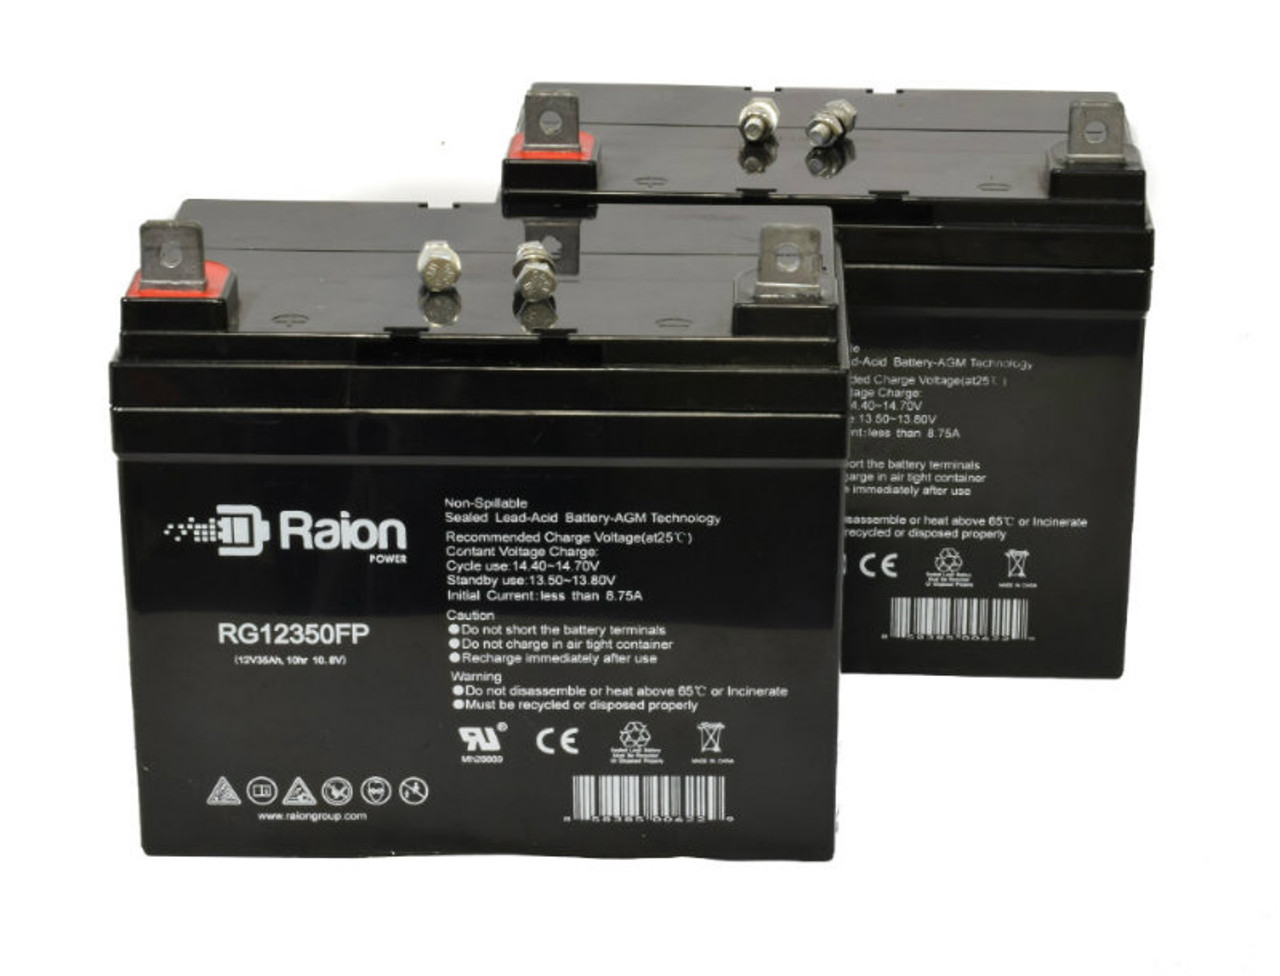 Raion Power RG12350FP Replacement Wheelchair Battery For Invacare Action Narrow (2 Pack)